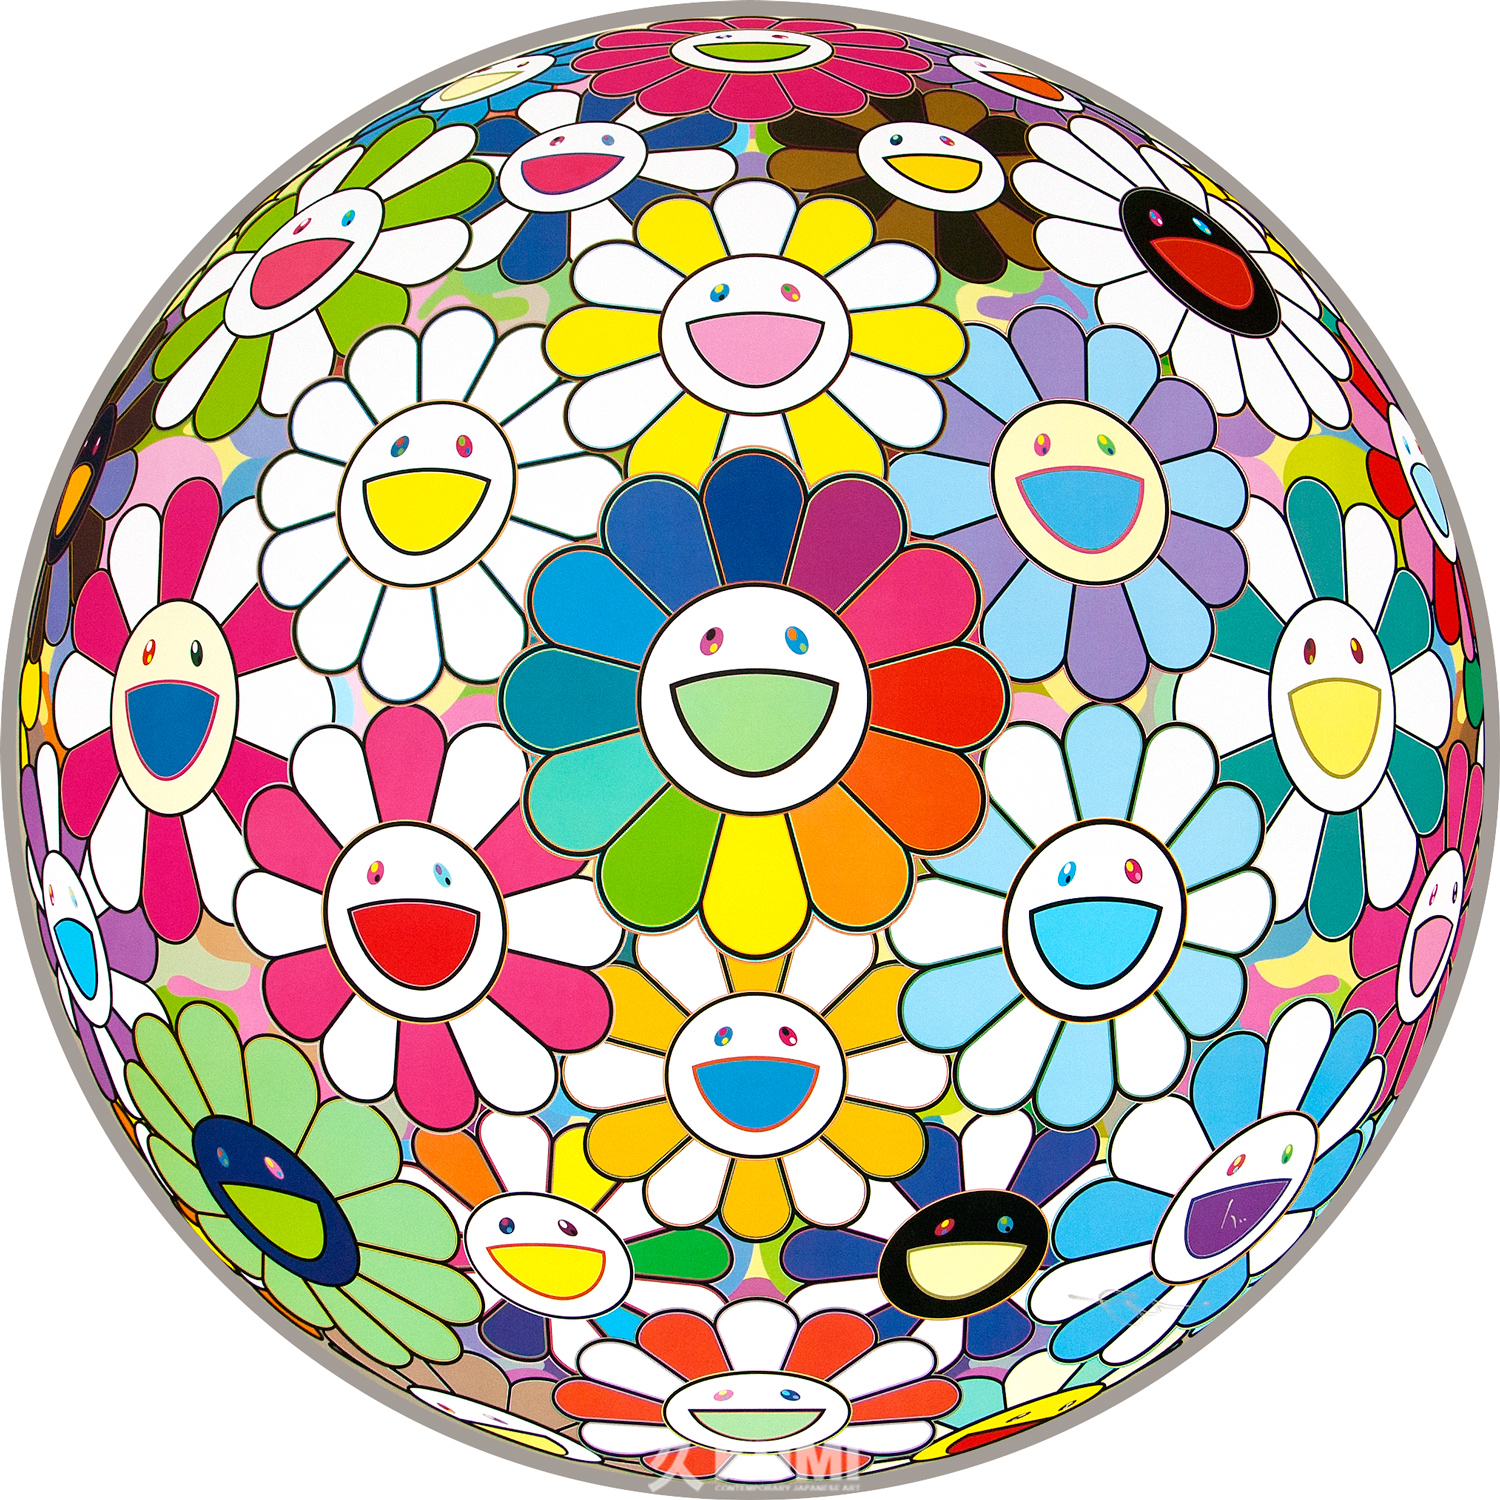 Takashi Murakami: Flower Ball (I Want to Hold You)